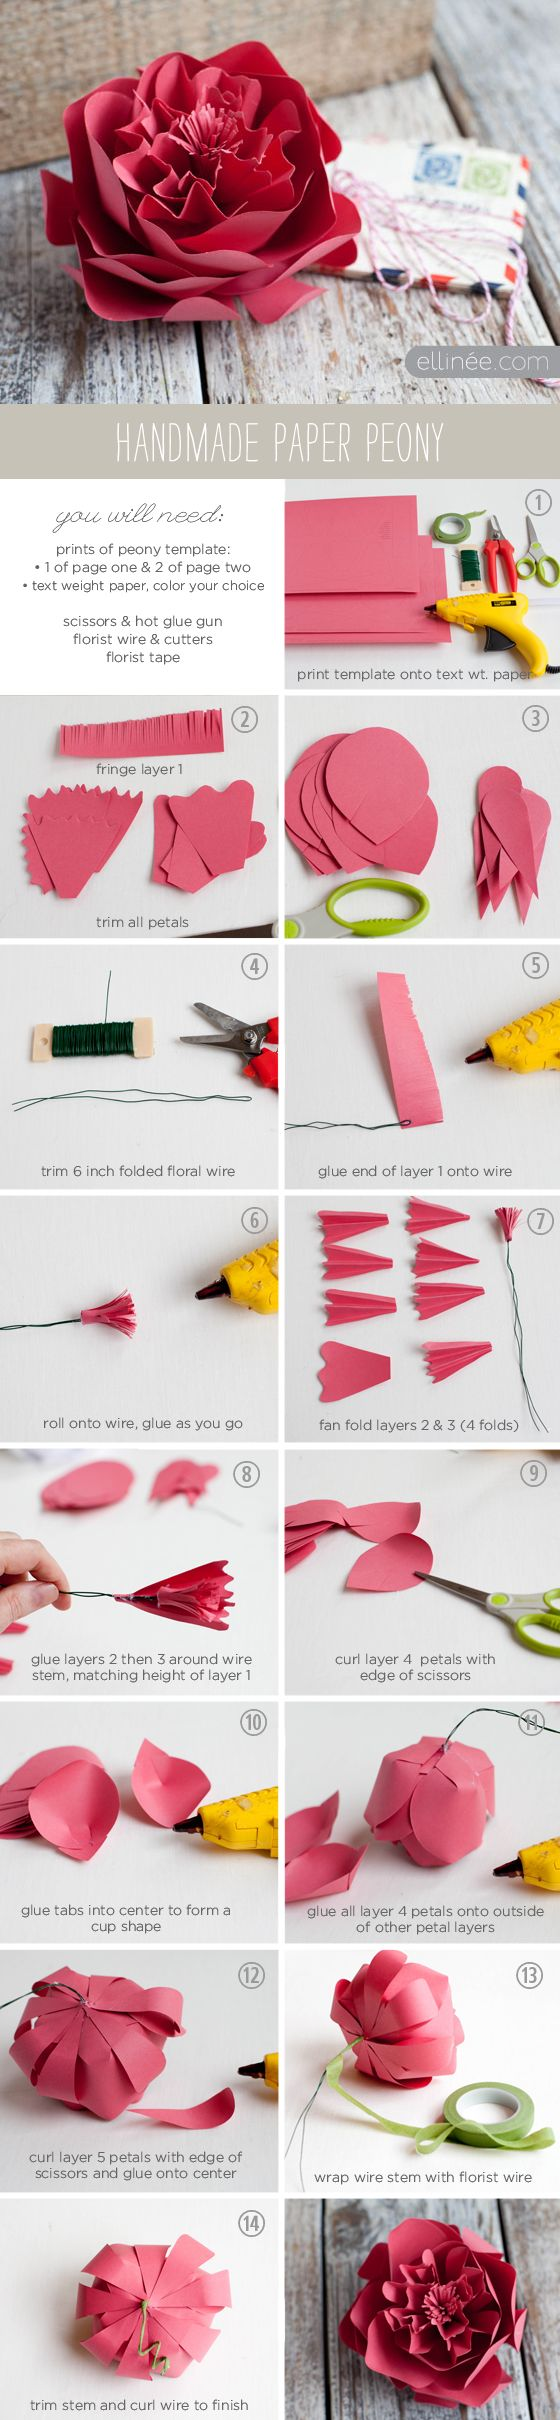 DIY Paper Peony tutorial & template -- from Ellinée journal